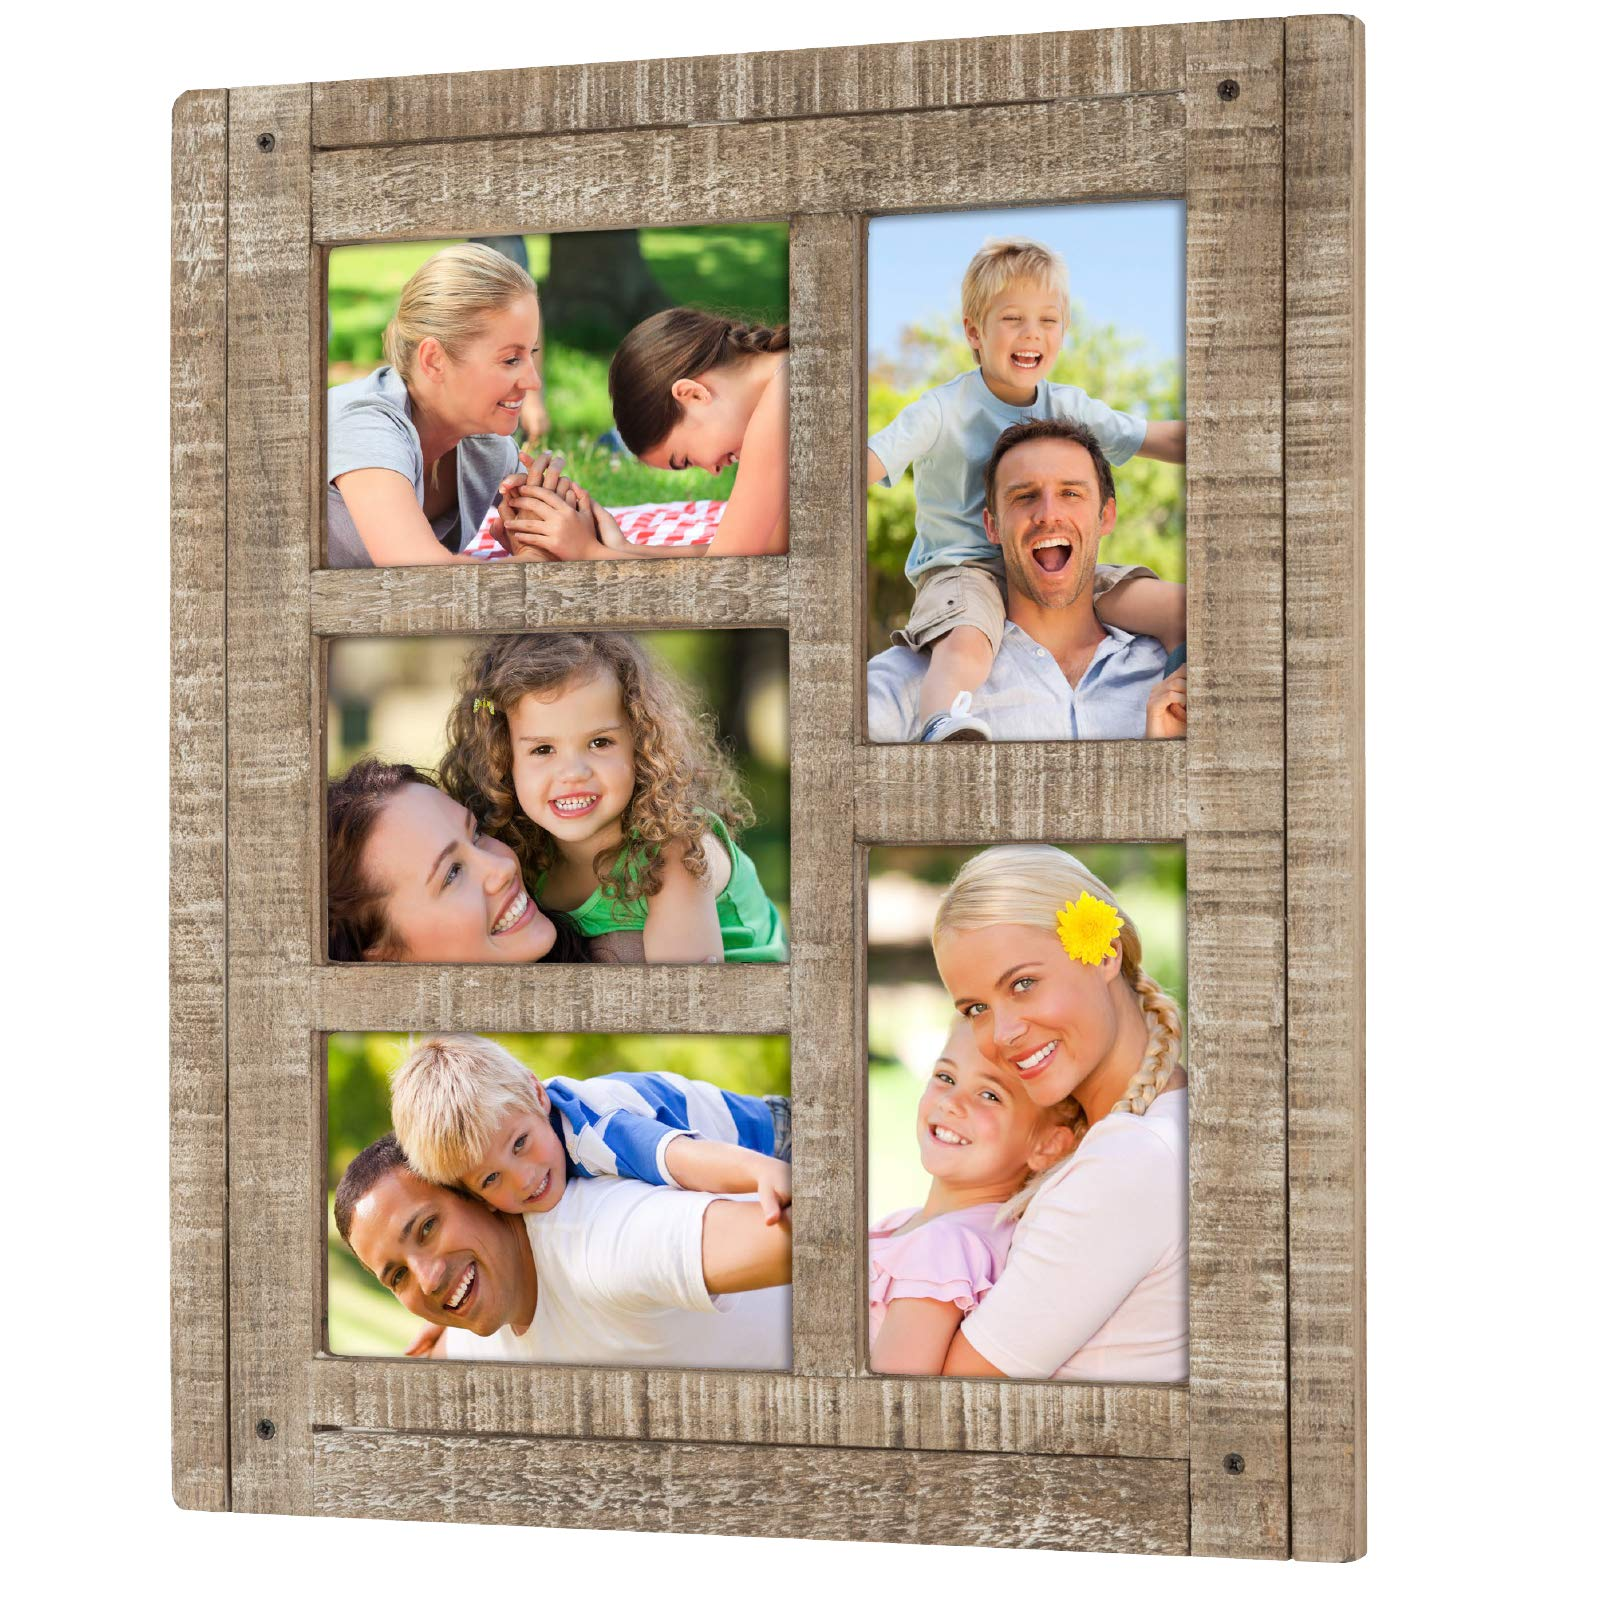 Collage Picture Frames from Rustic Distressed Wood: Holds Five 4x6 Photos: Ready to Hang or use Tabletop. Shabby Chic, Driftwood, Barnwood, Farmhouse, Reclaimed Wood Picture Frame Collage (Brown) by Excello Global Products